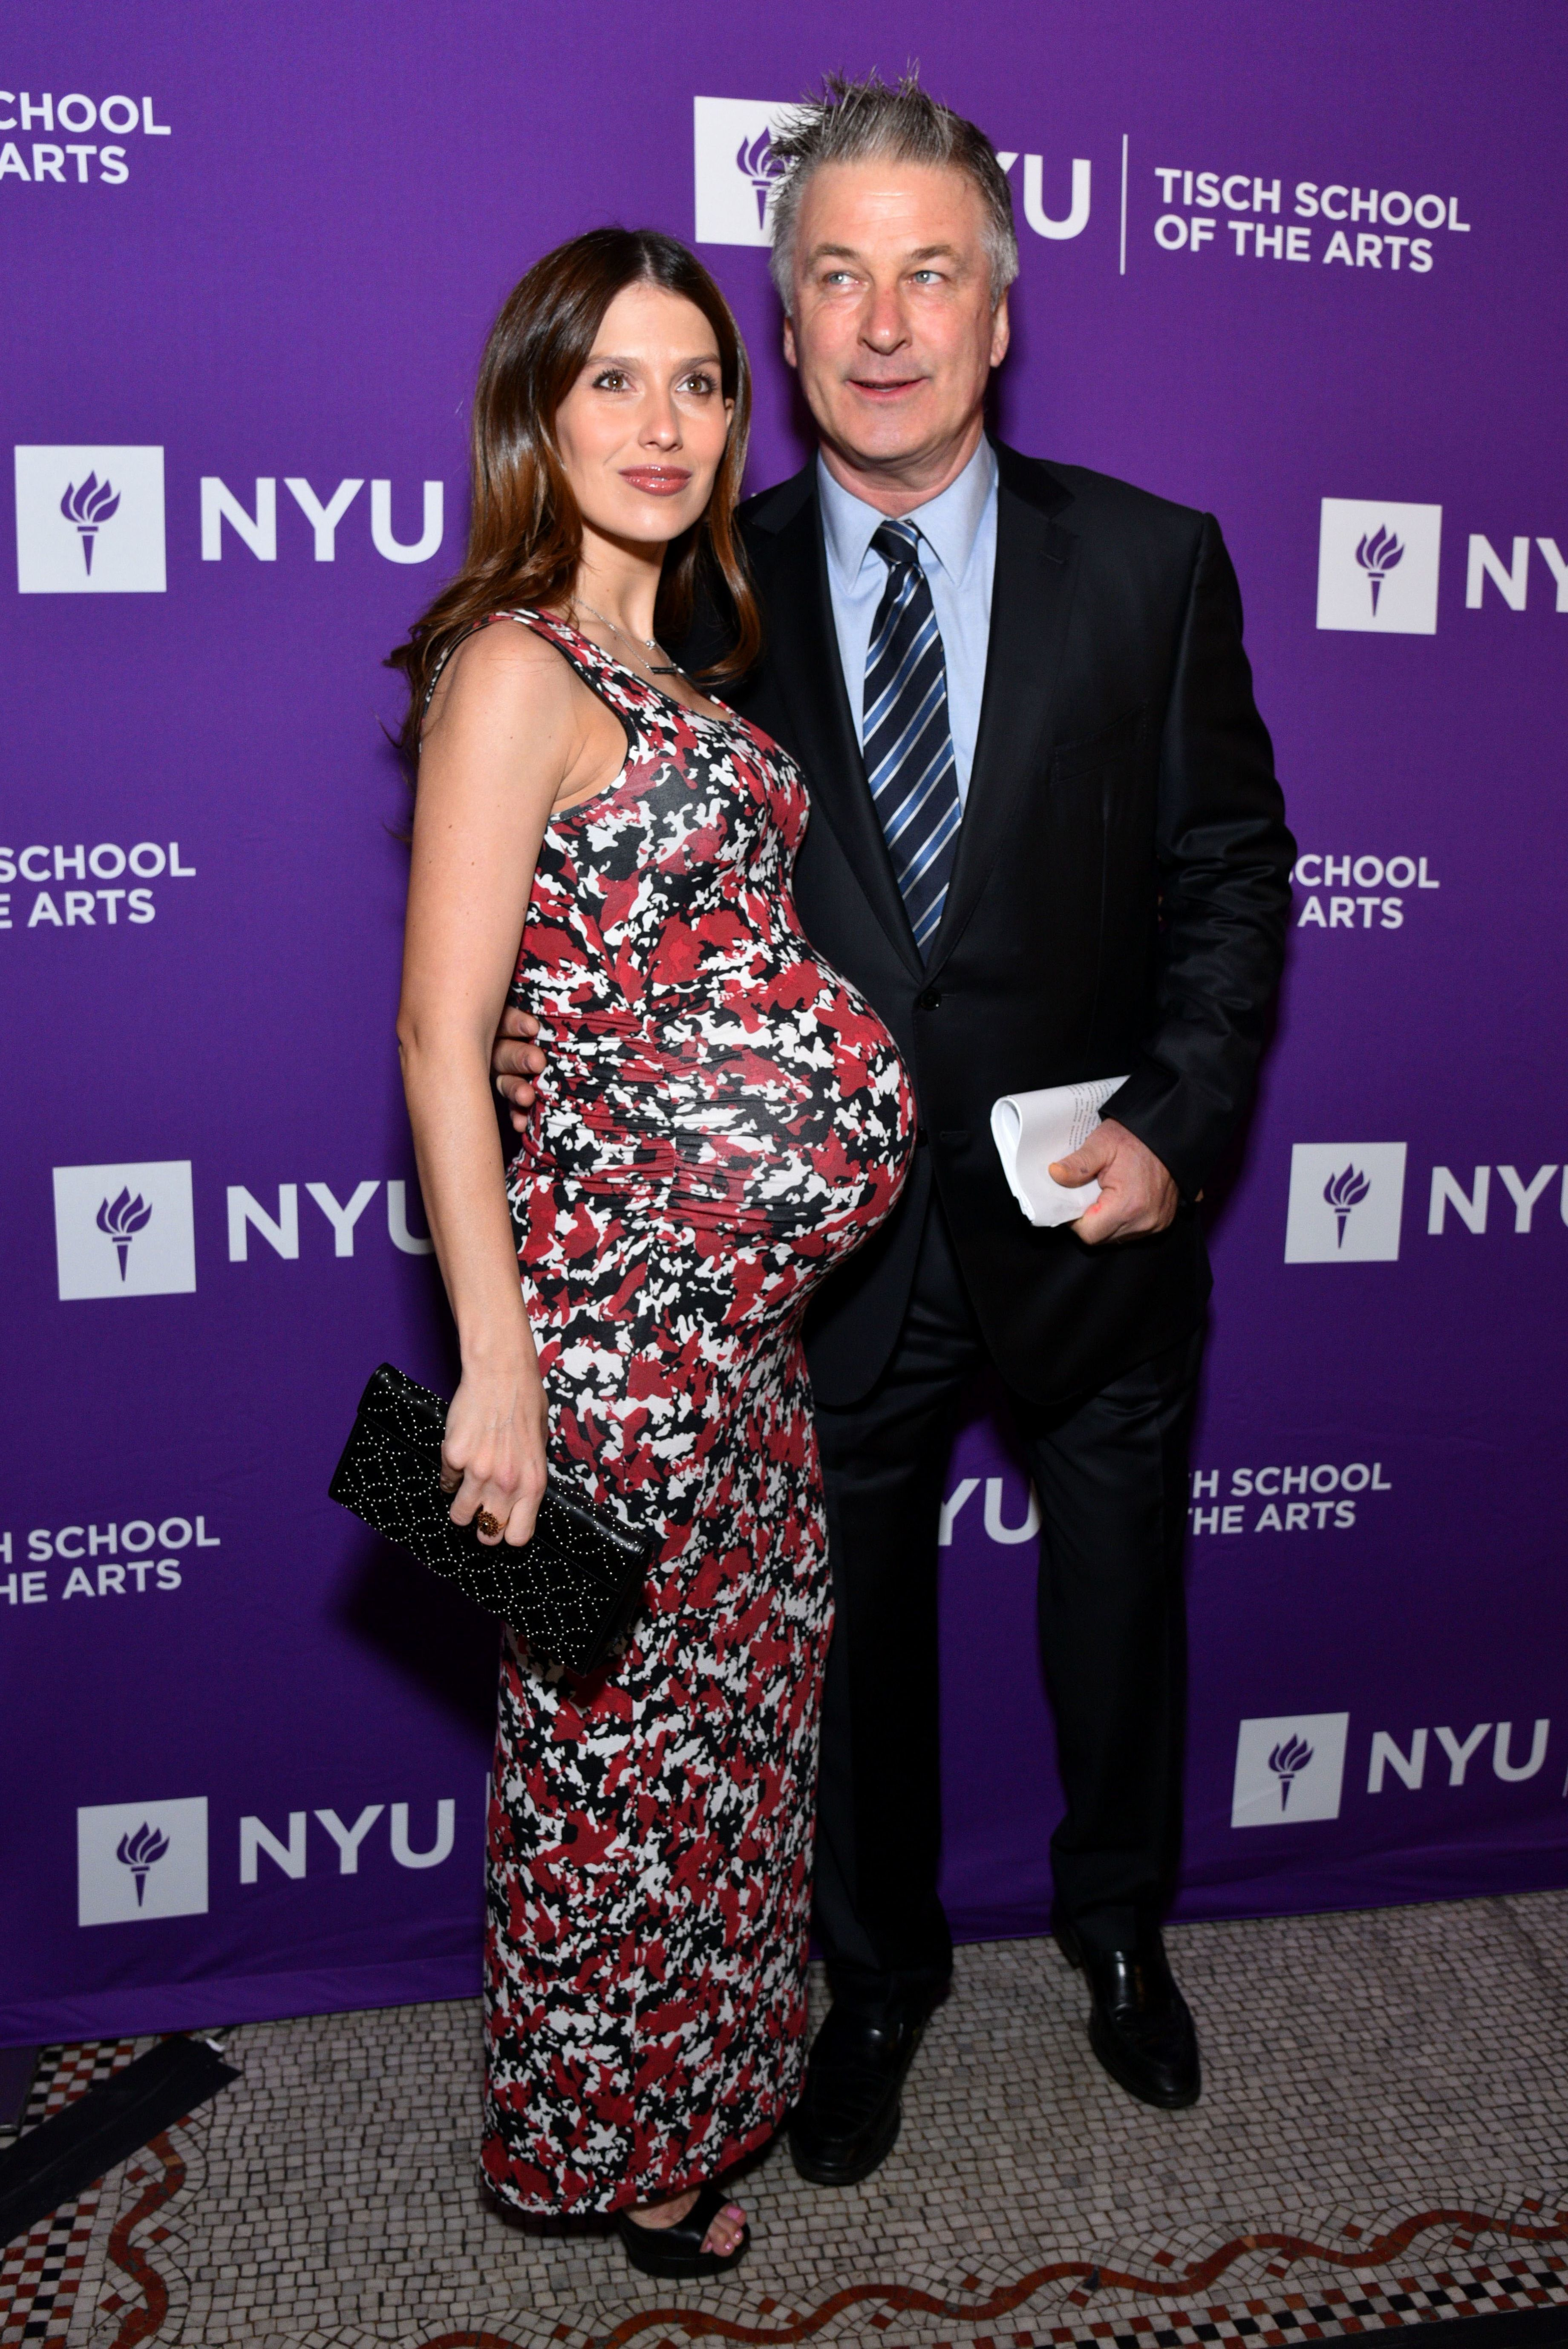 Hilaria Baldwin and Alec Baldwin attend the NYU Tisch School of the Arts Gala in New York City on April 16, 2018.